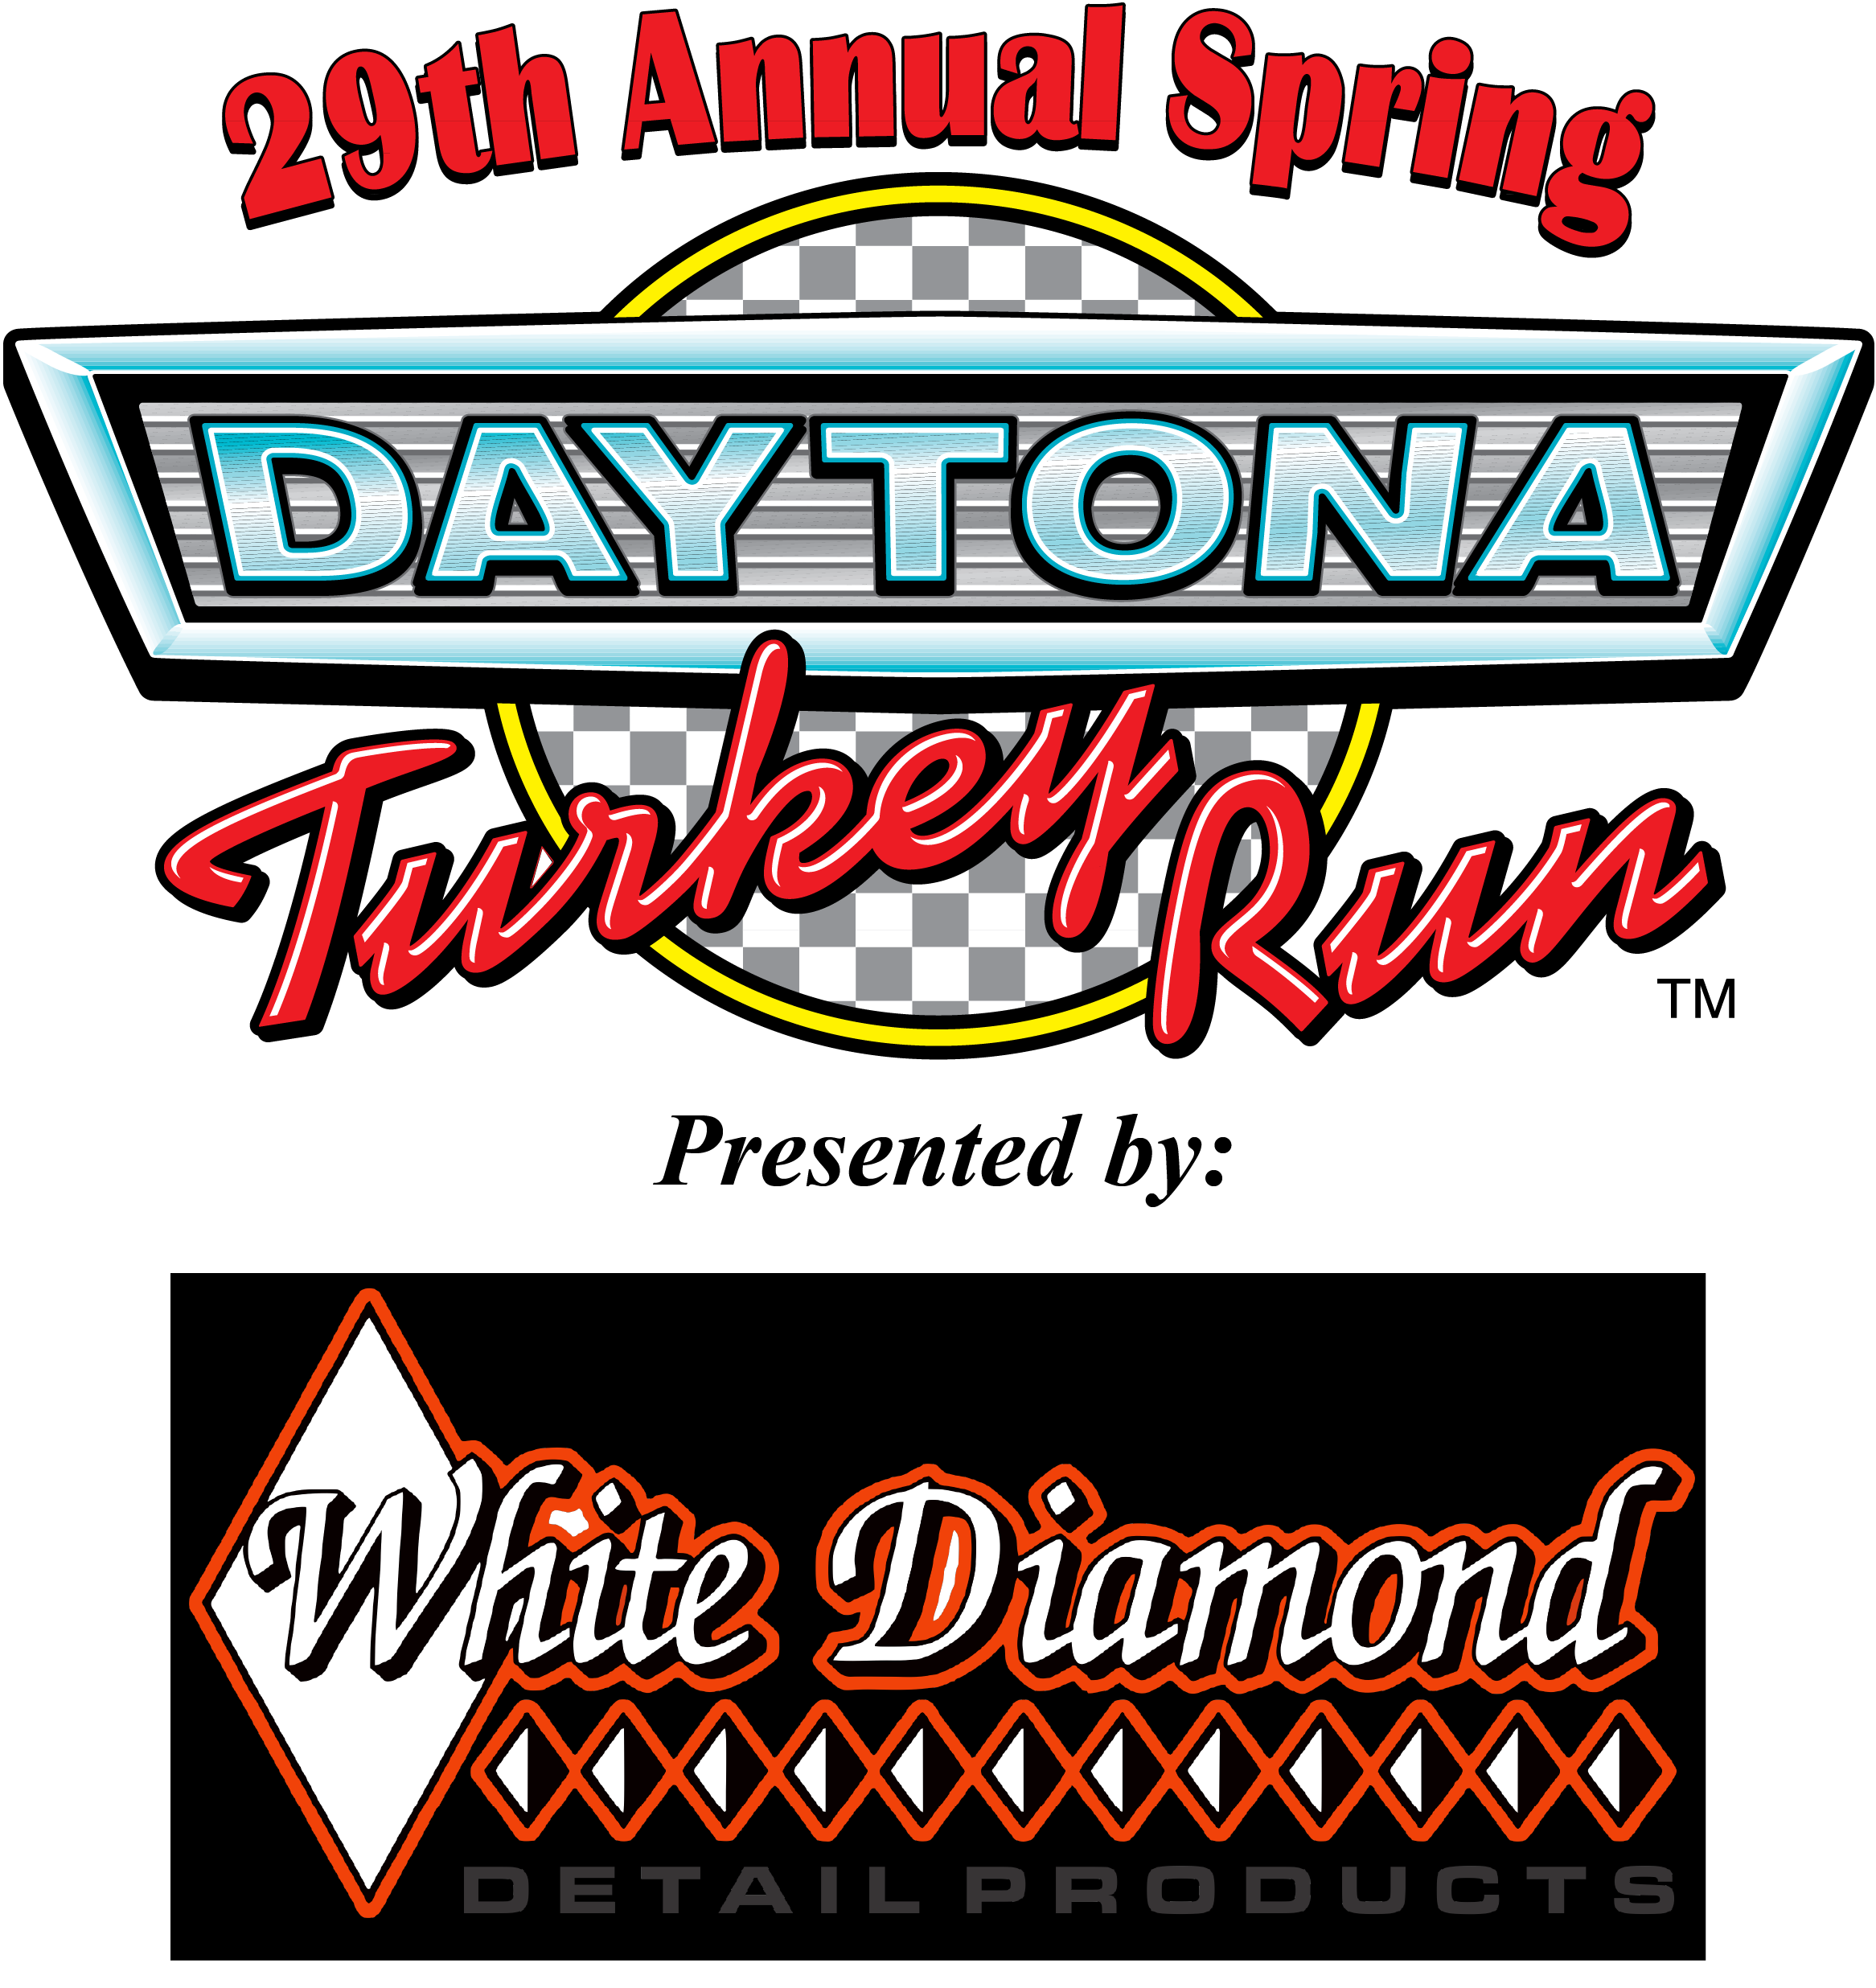 Tickets for 29th Spring Daytona Turkey Run in Daytona Beach from ShowClix